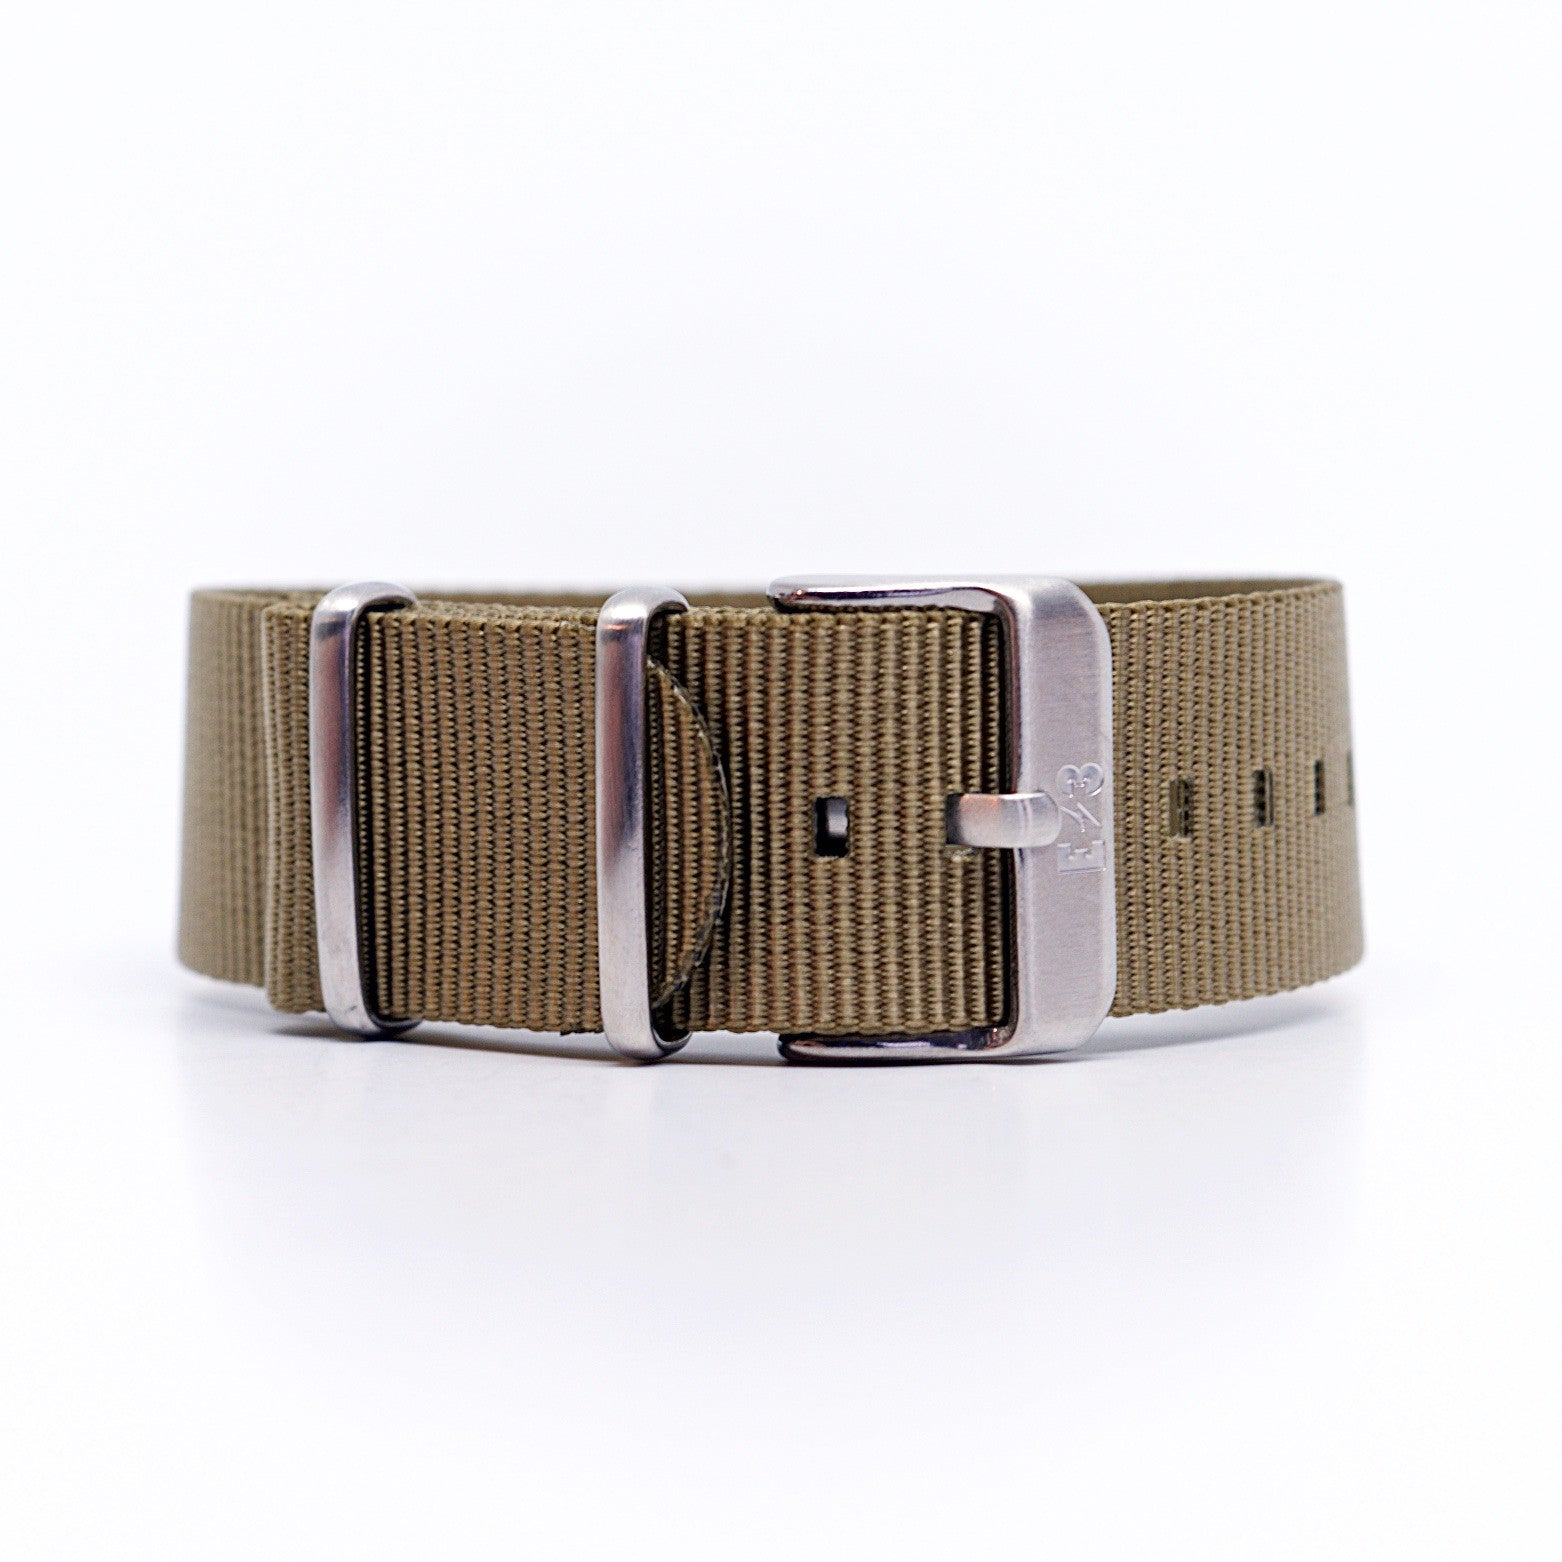 E3 Ballistic Natural Nylon 22mm Military Watch Strap: Zulu / Nato / Military